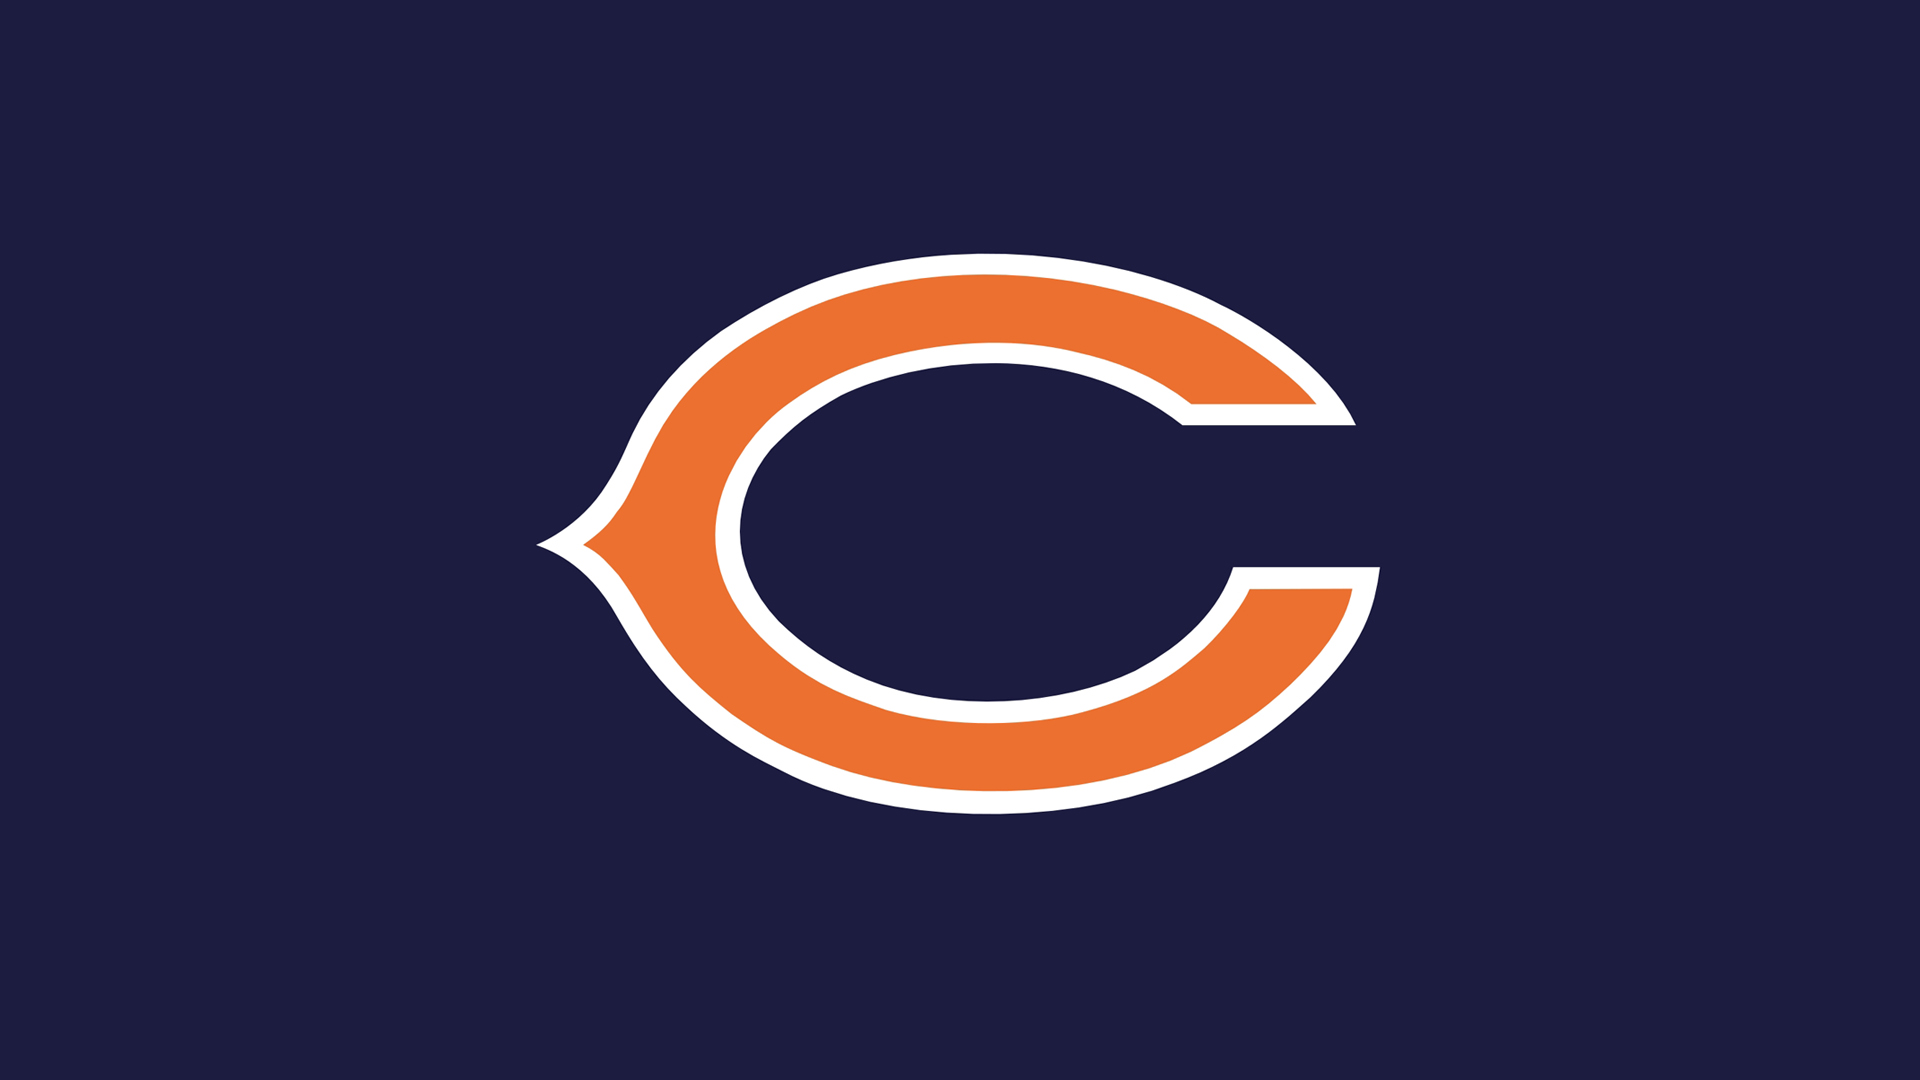 Nfl Logos Images Nfl Chicago Bears c Logo Dark 1920x1080